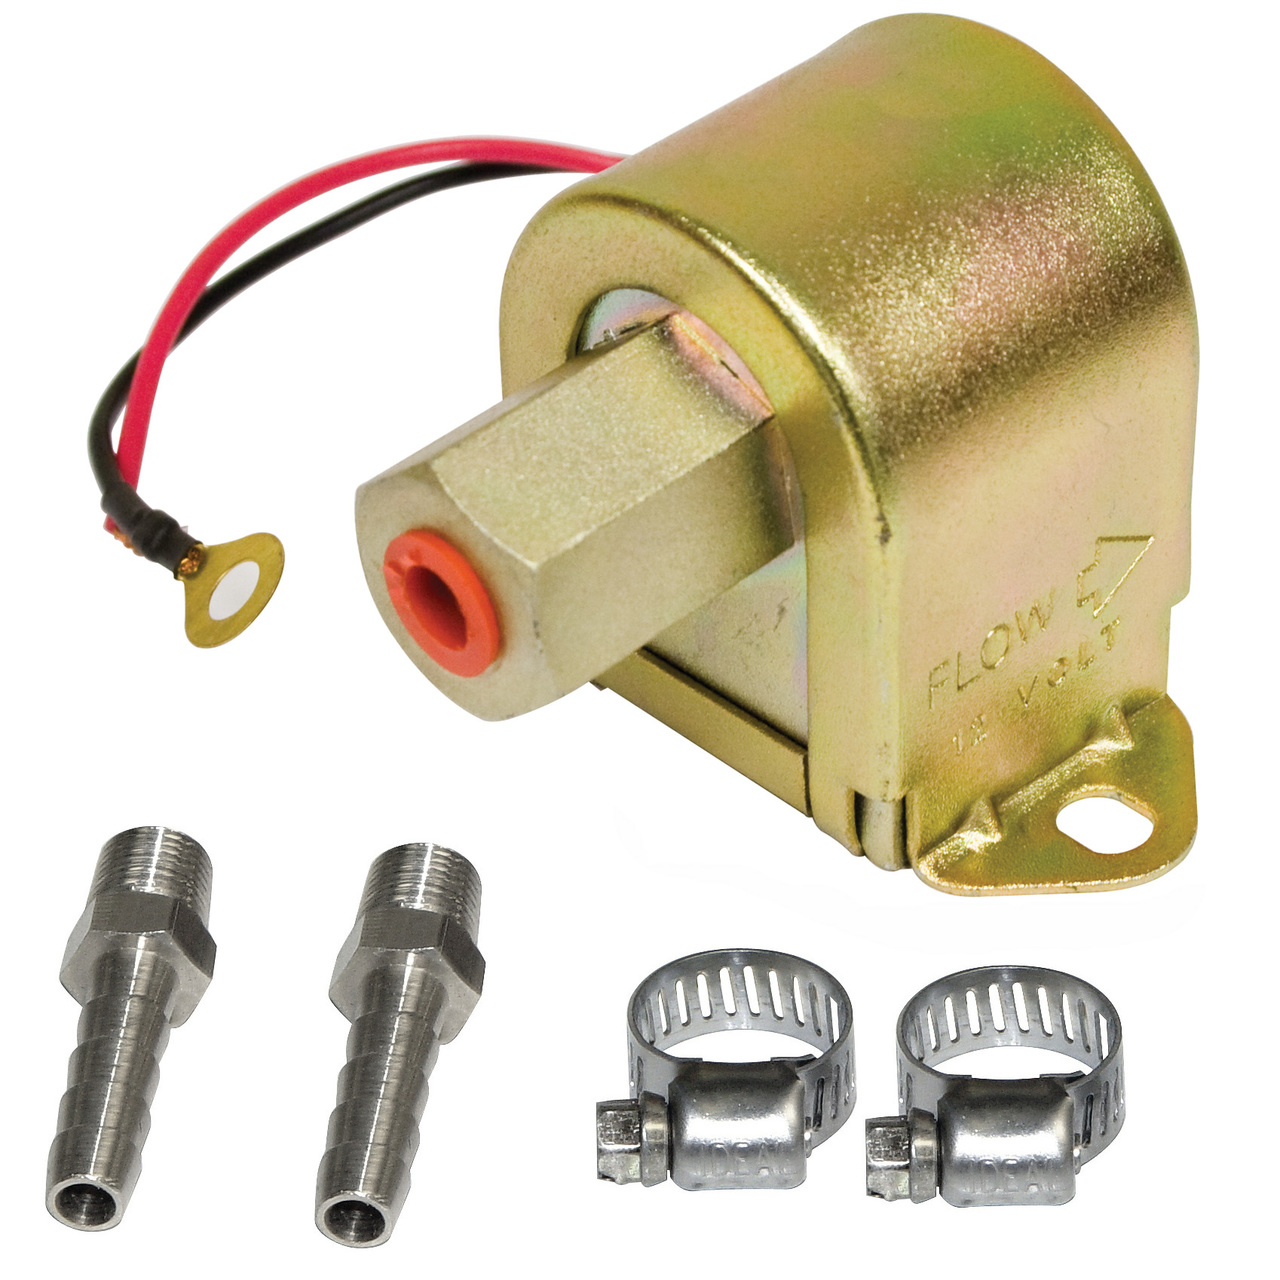 medium resolution of empi 41 2510 8 universal electric fuel pump 1 5 4 psi includes clamps fittings